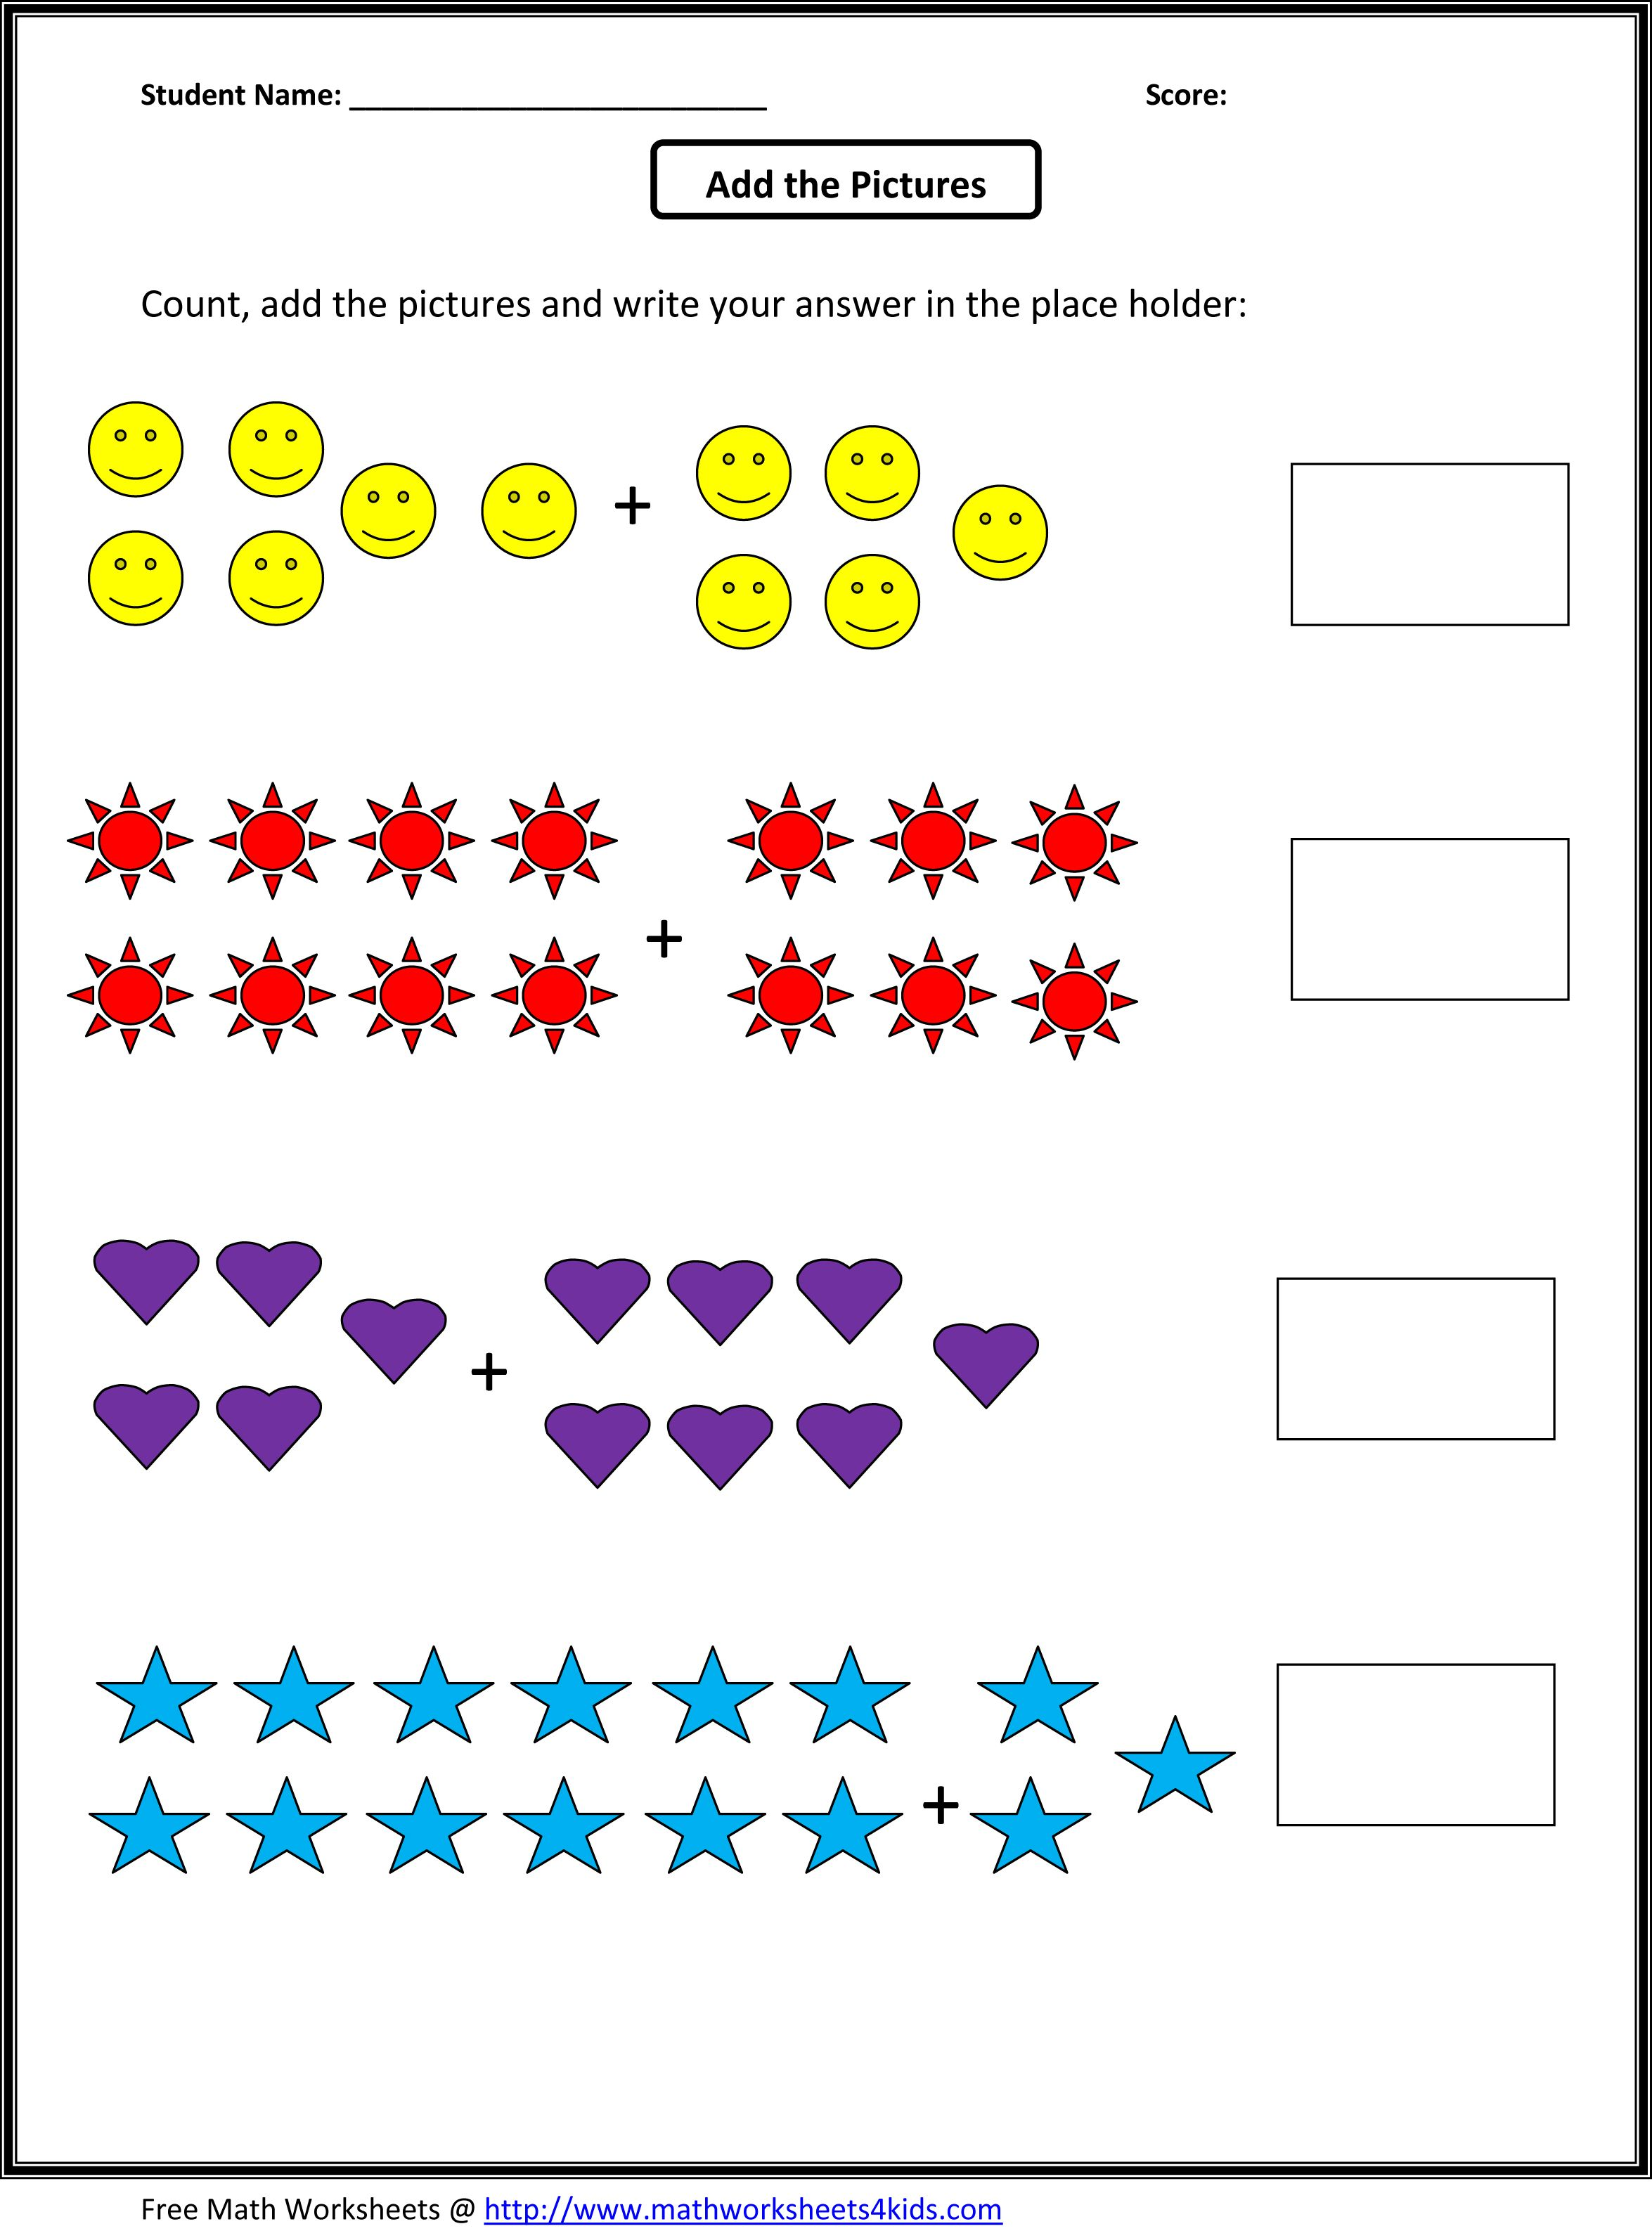 grade 1 addition math worksheets – Maths Worksheets for Grade 1